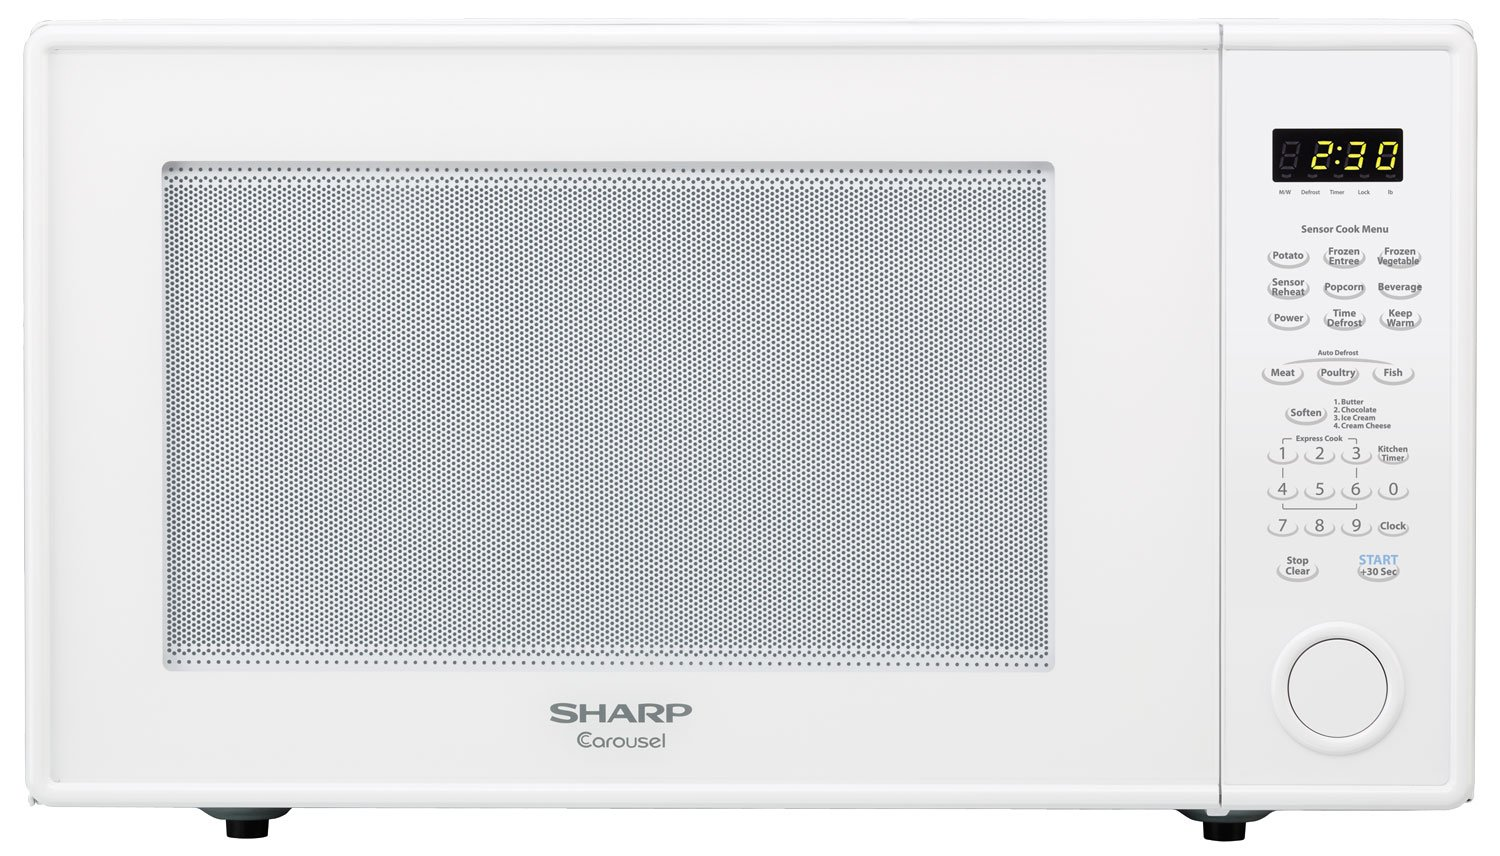 Sharp Countertop Microwave Oven ZR659YW 2.2 cu. ft. 1200W White with Sensor Cooking